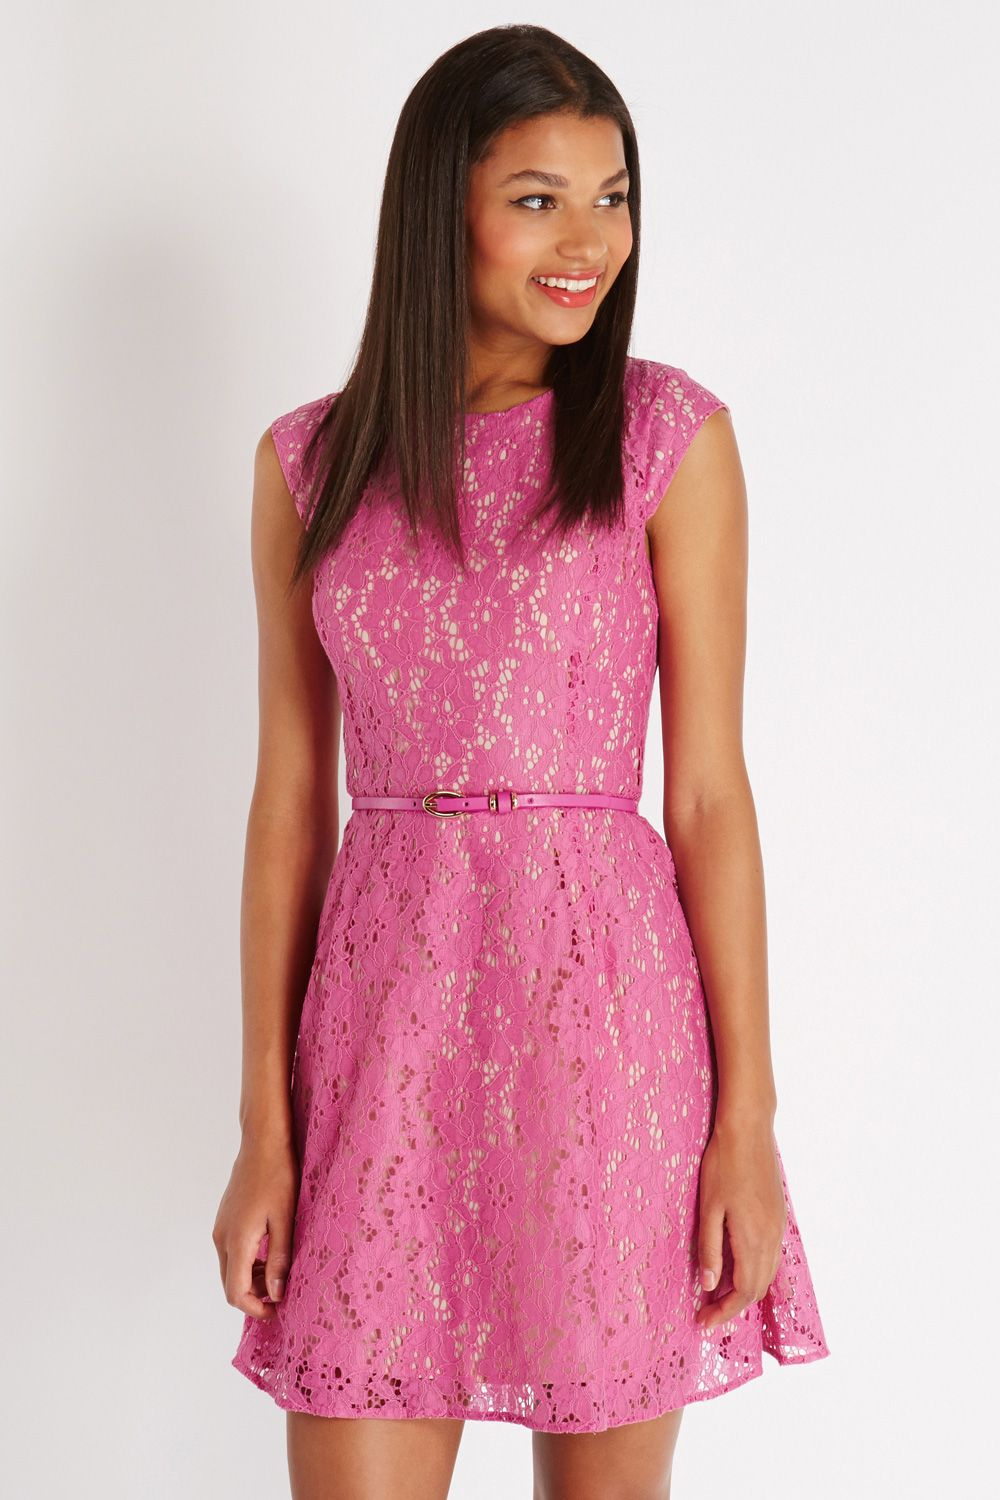 Cheap robe dentelle, Buy Quality women dress directly from China bodycon dress Suppliers: Spring Hollow Pink Lace Bodycon Dress Womens Dresses New Arrival Vintage Skater Dress Kleider Damen Robe Dentelle K Enjoy Free Shipping Worldwide! Limited Time Sale Easy Return/5(2).